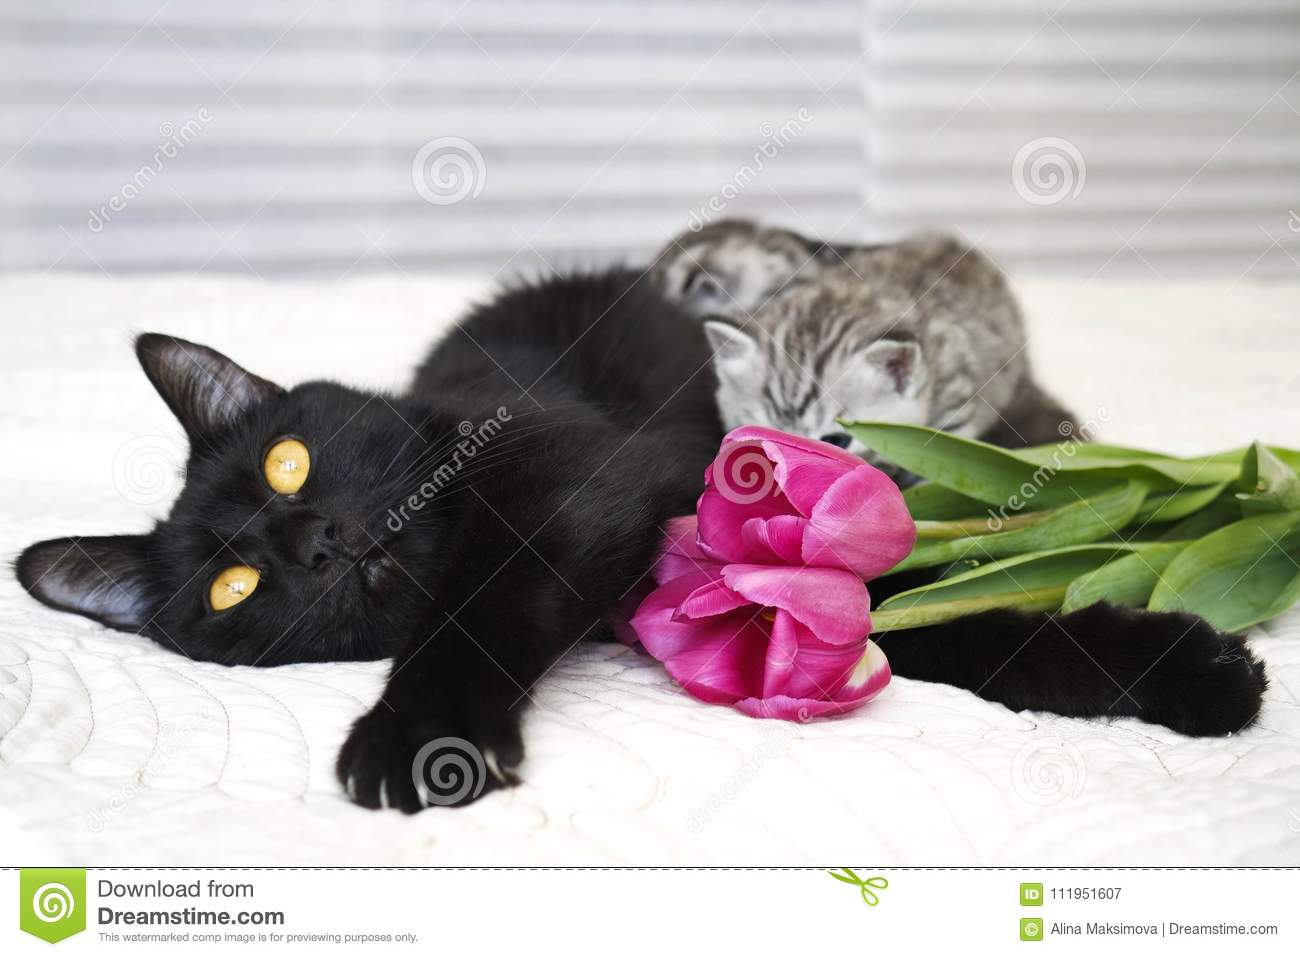 Beautiful Black Cat With Kittens Stock Image Image Of Kittens Flower 111951607